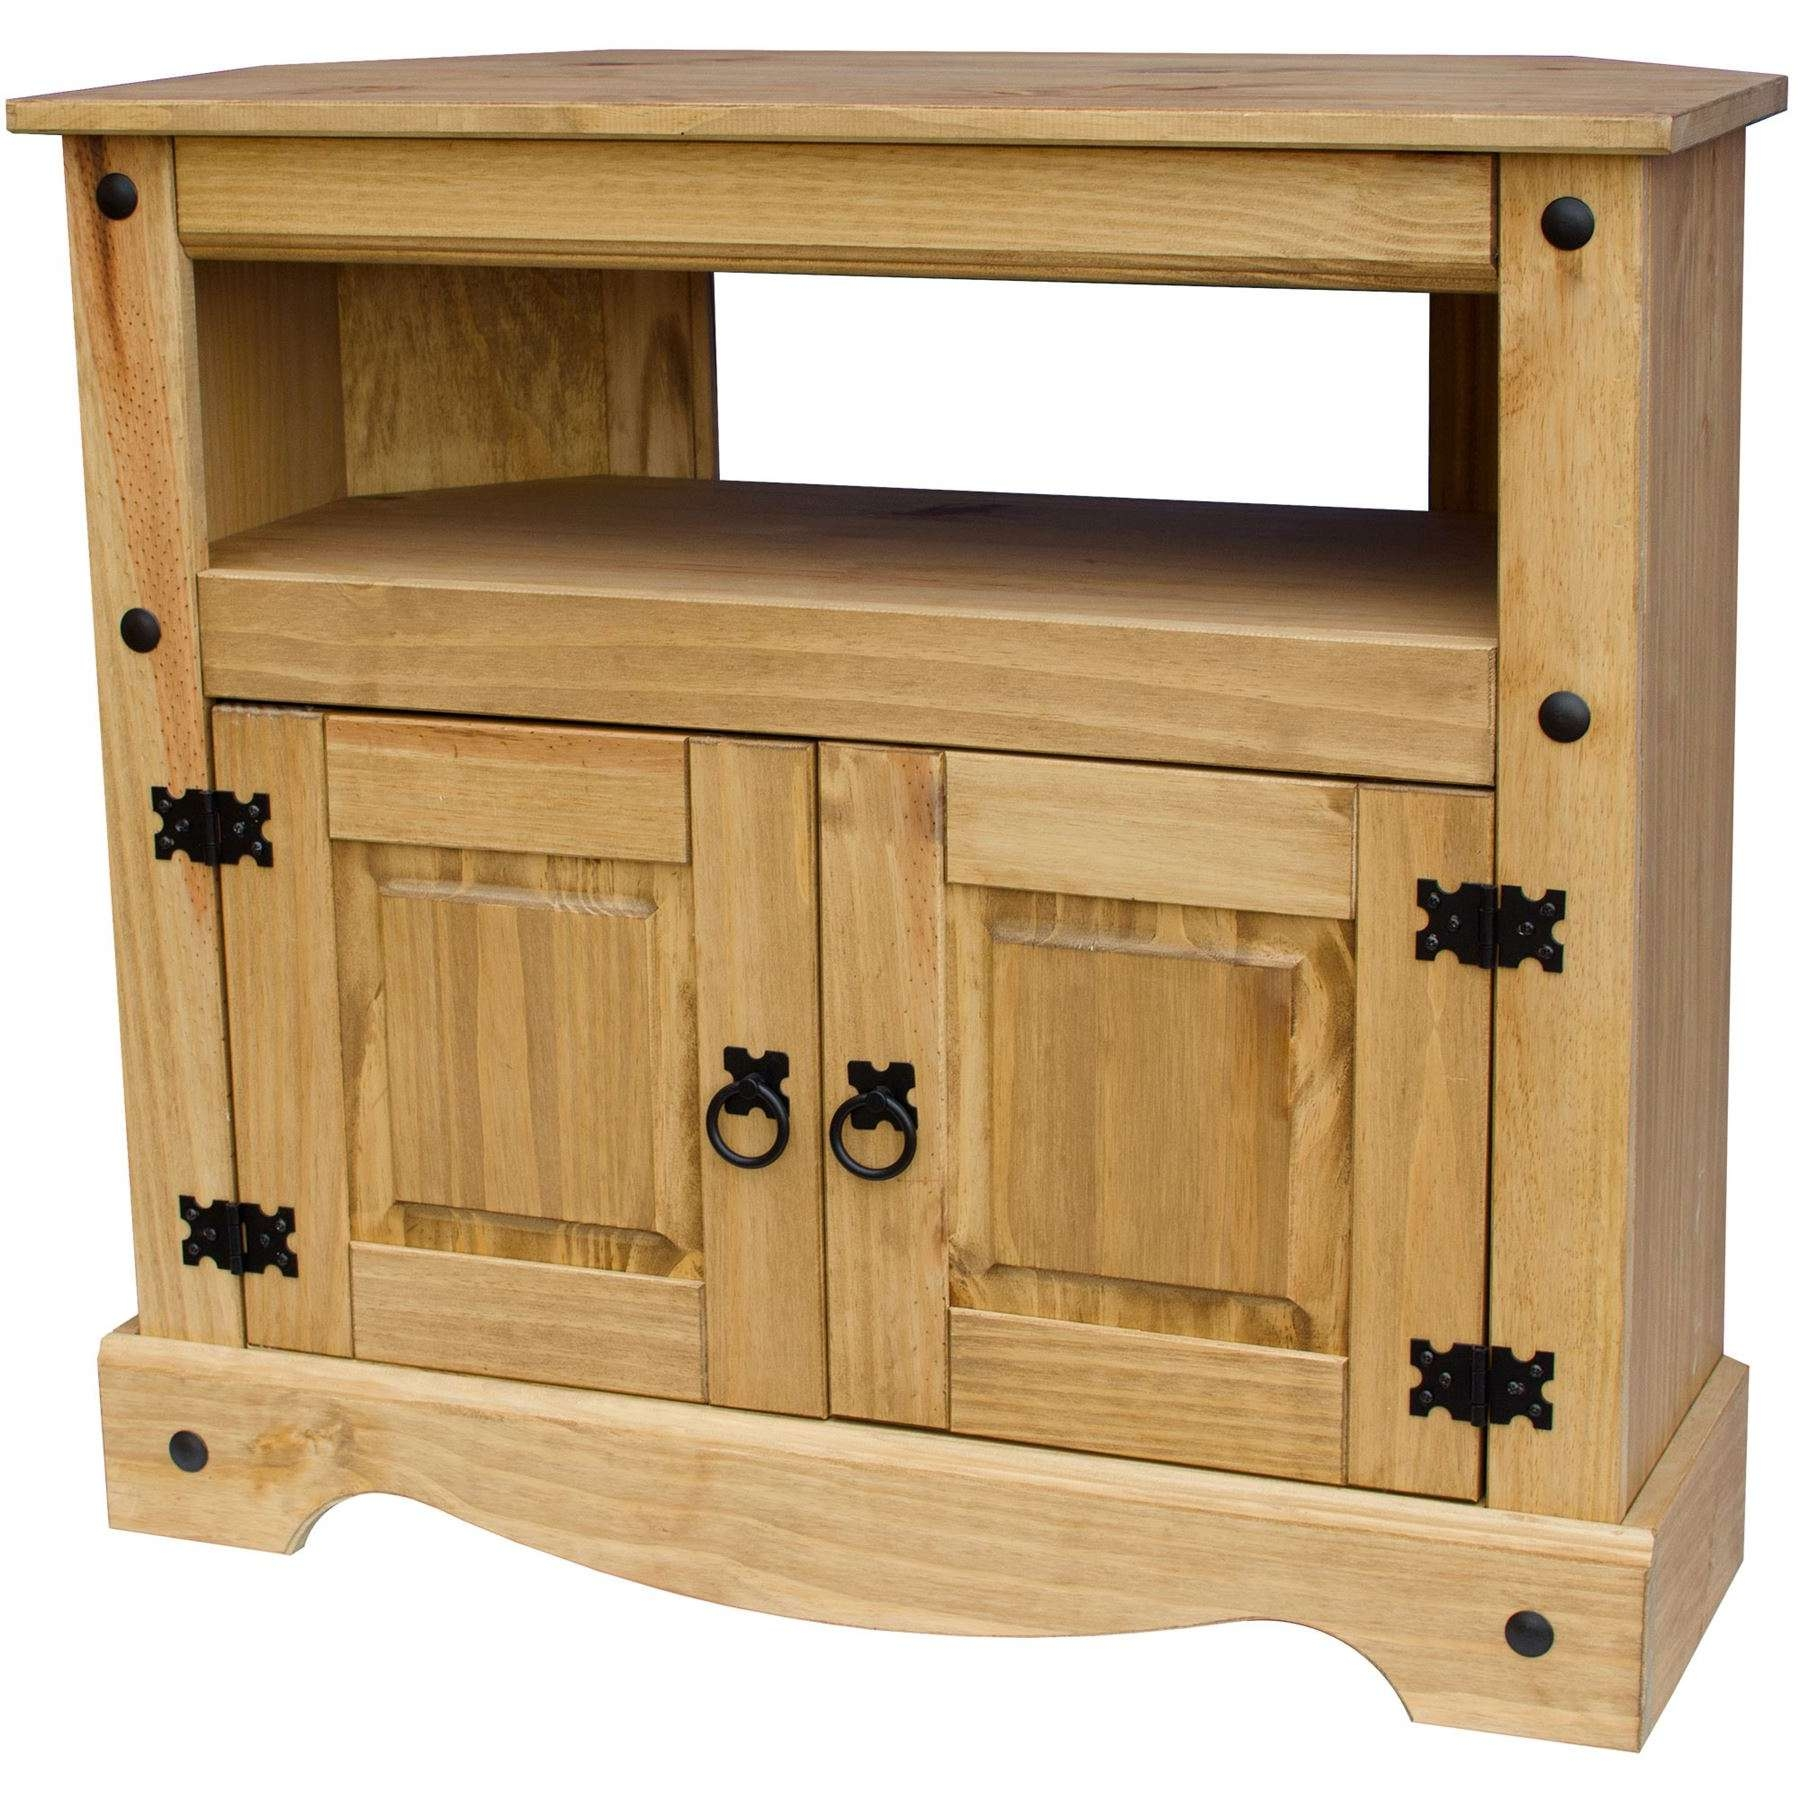 Corona Panama Tv Cabinet Media Dvd Unit Solid Pine Wood Mexican Pertaining To Pine Tv Cabinets (View 3 of 20)